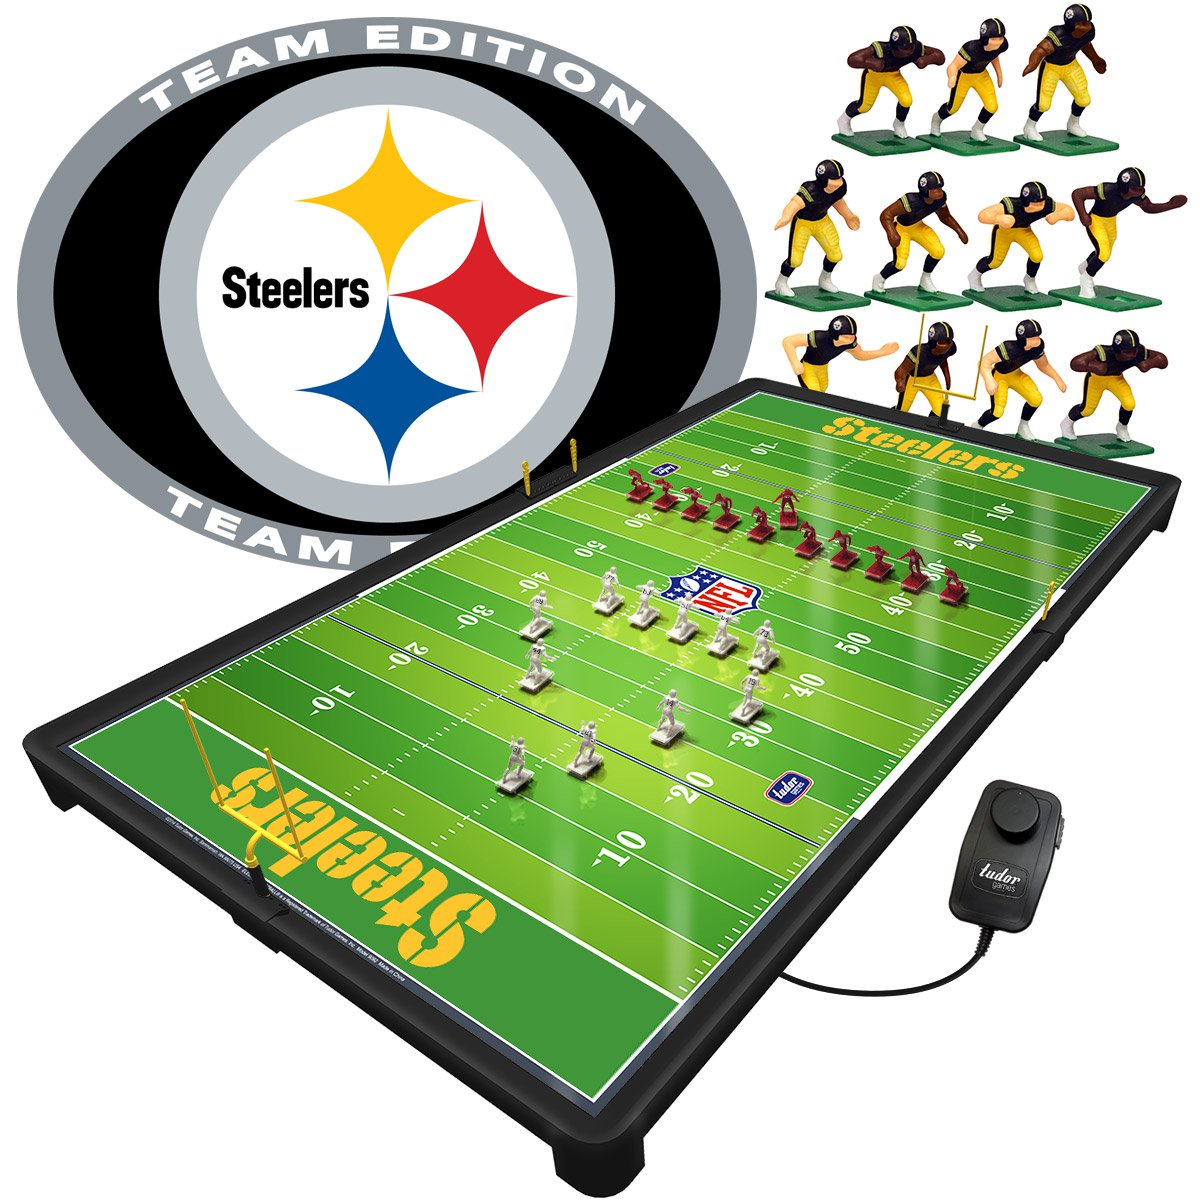 Pittsburgh Steelers NFL Pro Bowl Electric Football Game Set